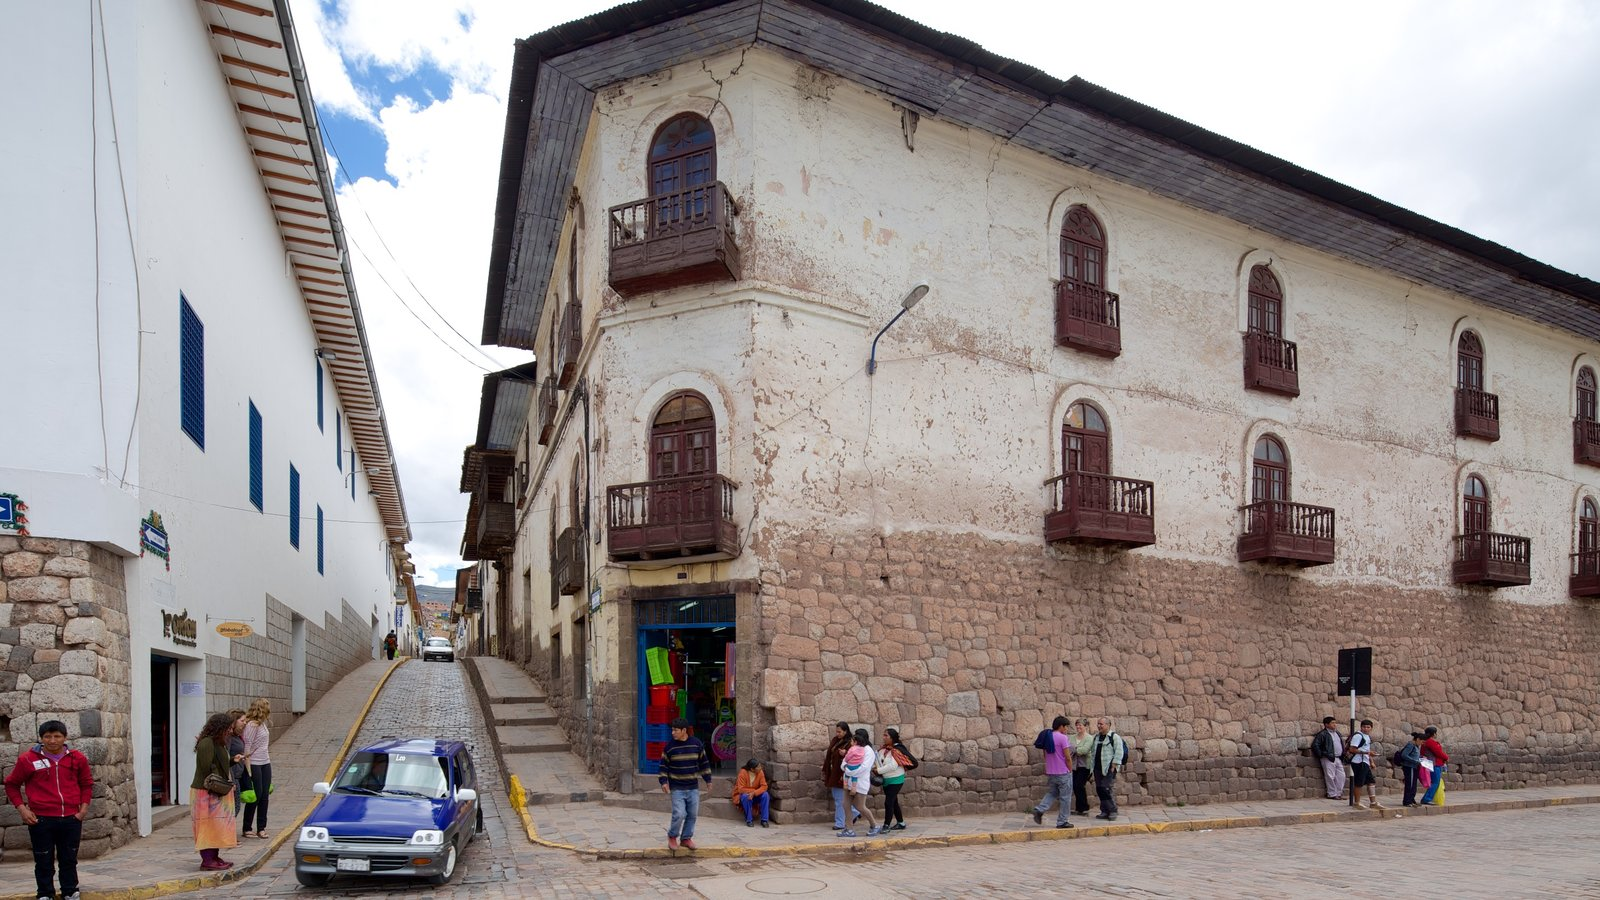 Cusco which includes street scenes as well as a large group of people